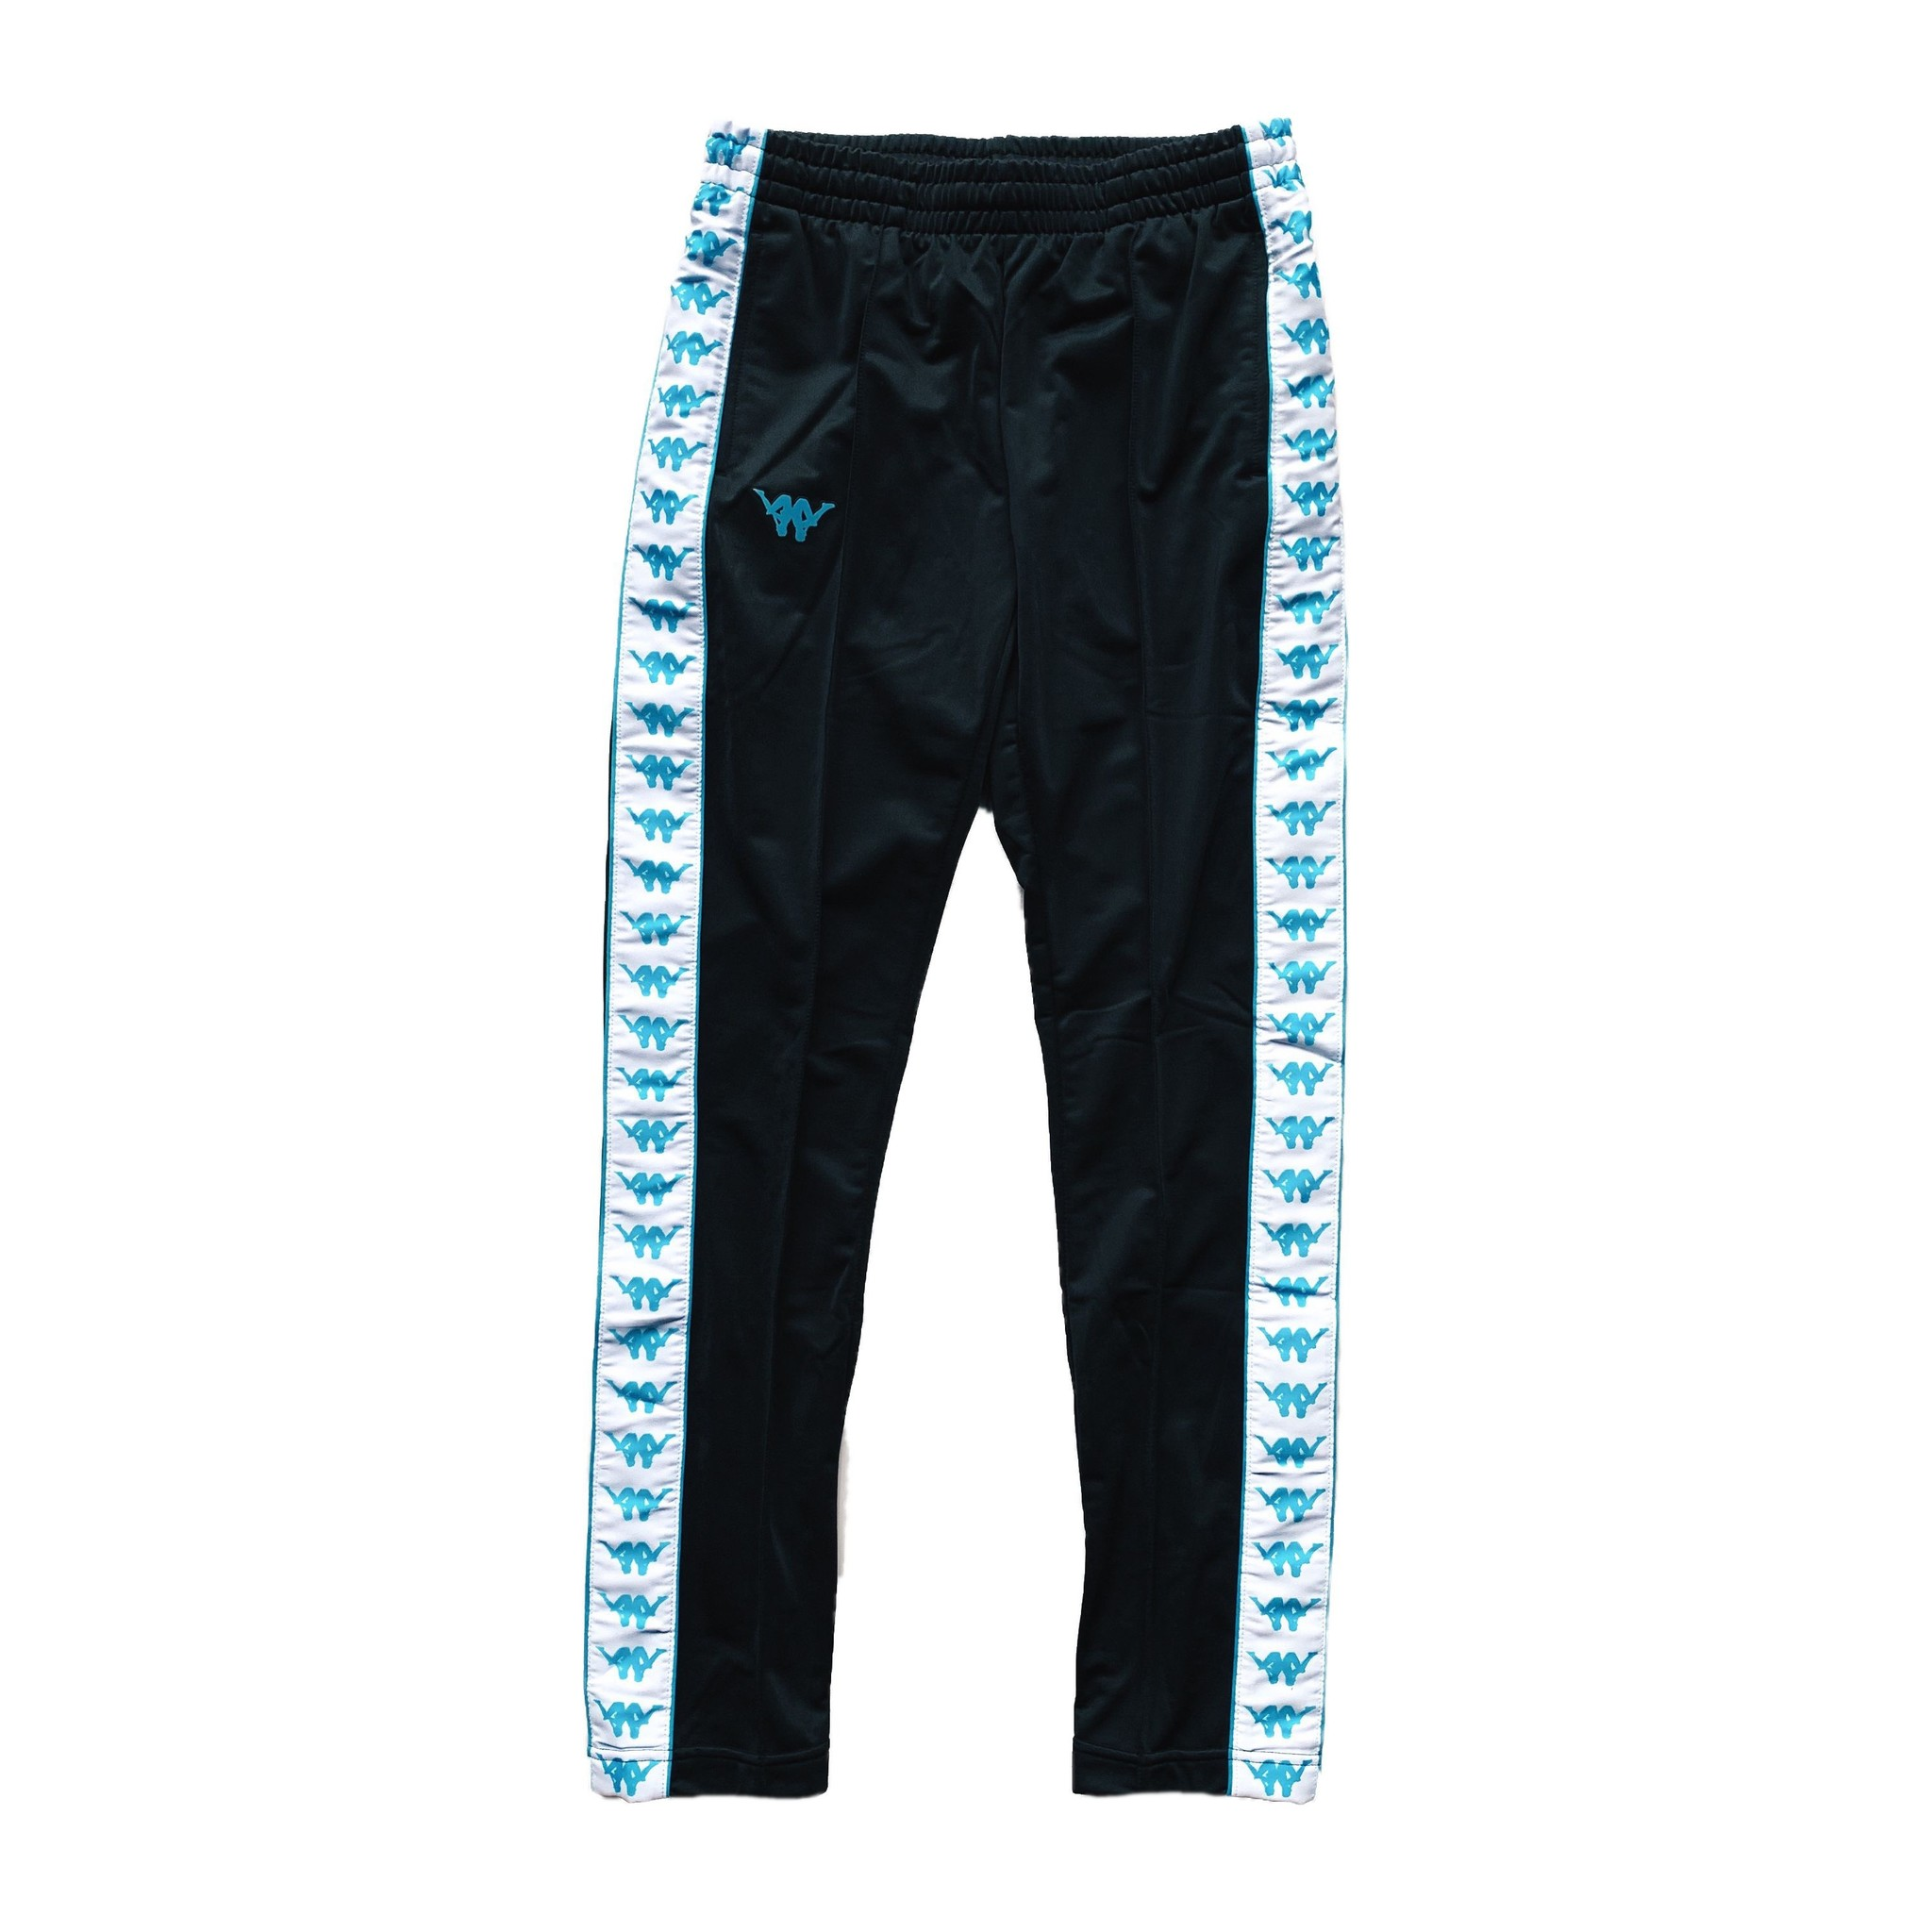 kappa Kappa Bacile Bottoms Black